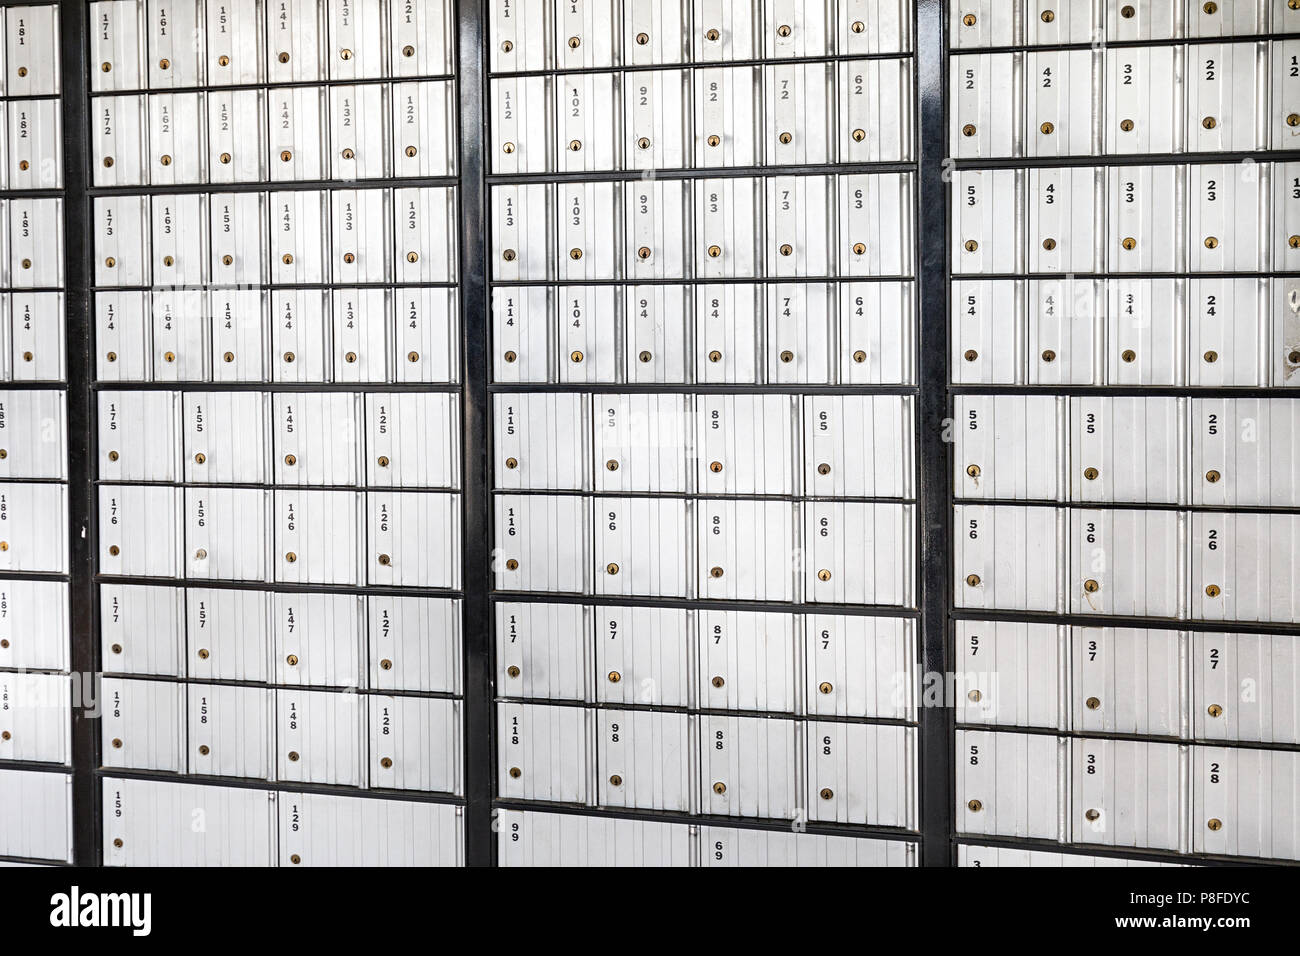 Mailboxes, US post office, USA - Stock Image